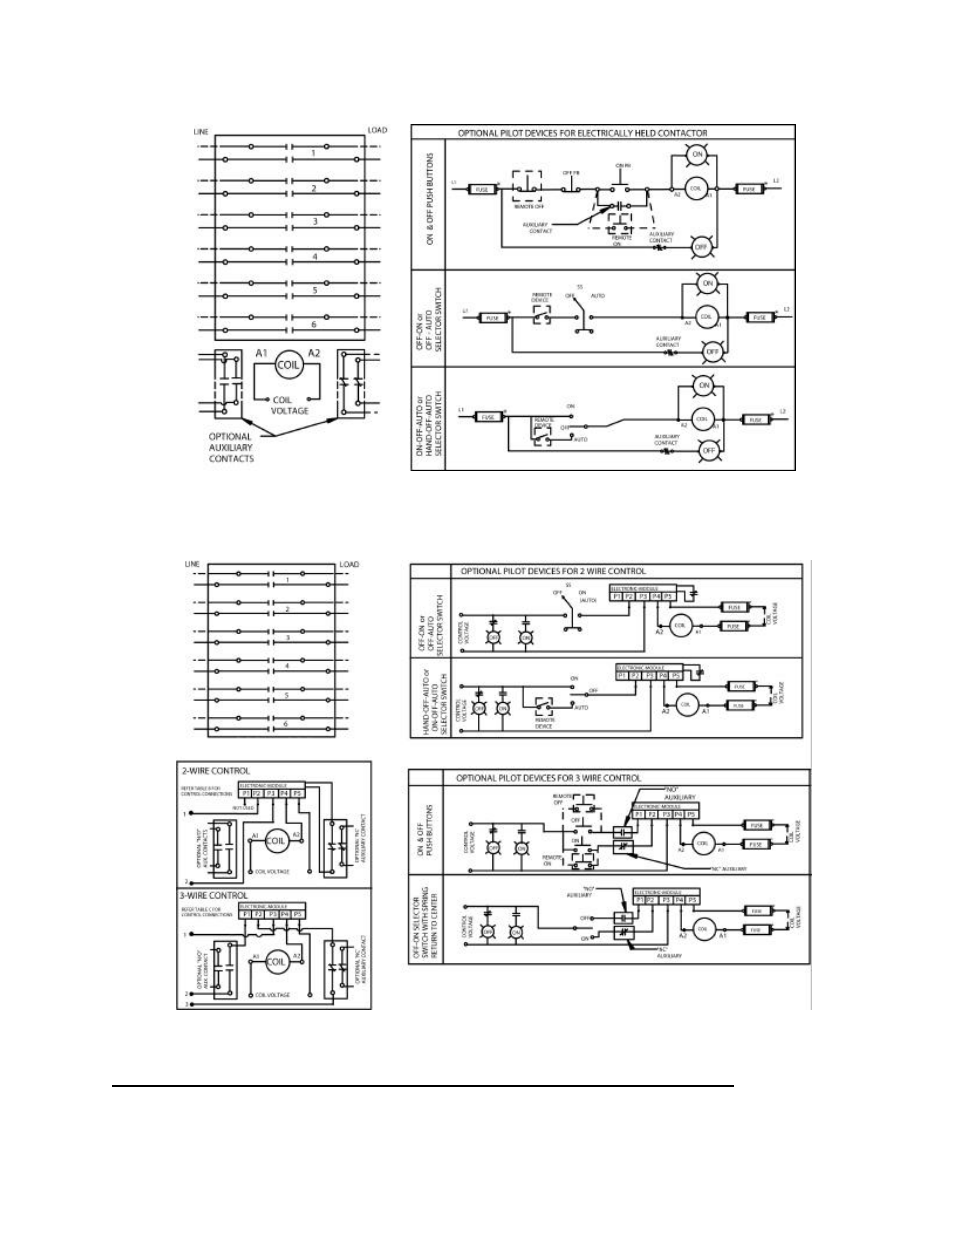 ge industrial solutions cr lighting contactor series user ge industrial solutions cr460 lighting contactor series user manual page 4 4